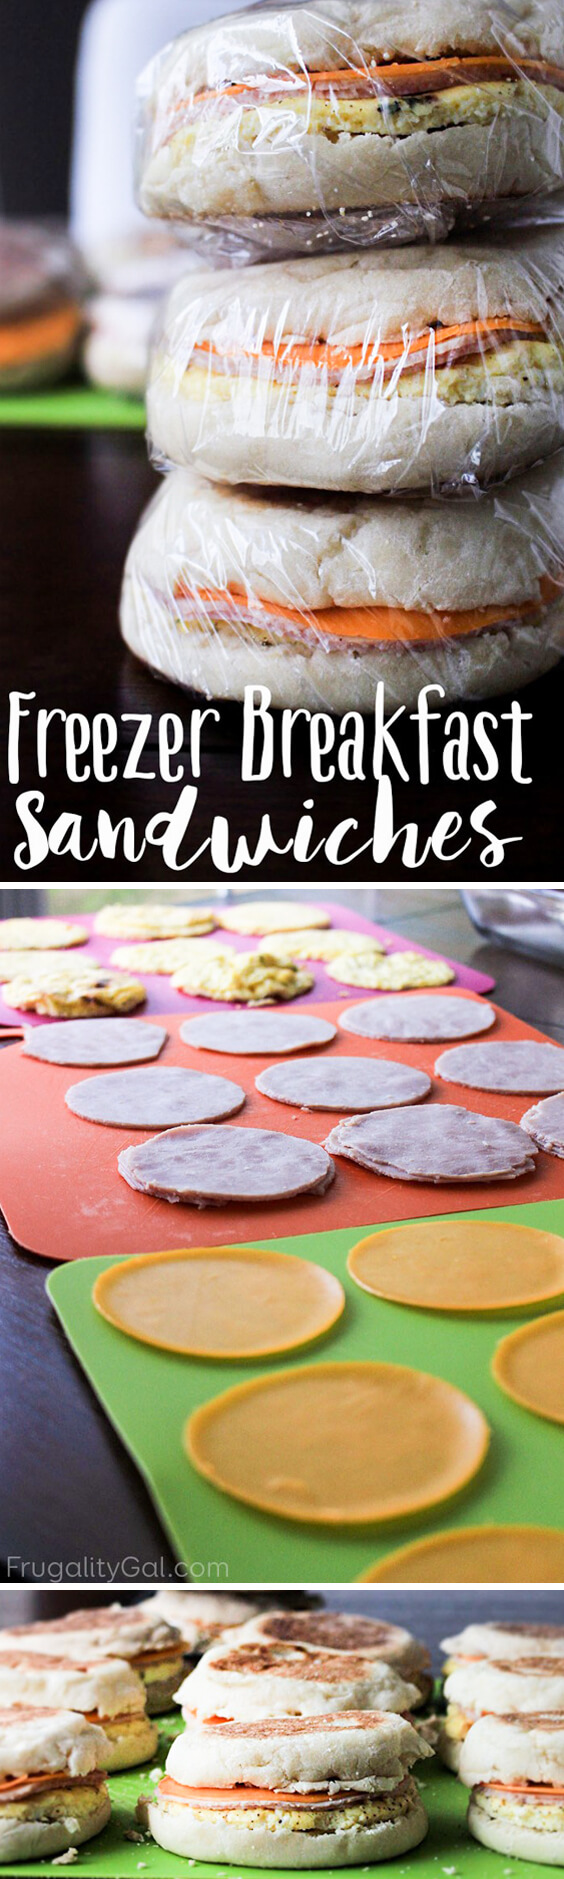 Freezer Breakfast Meals - Freezer Breakfast Sandwiches - Breakfast Freezer Meals - Breakfast Freezer Sandwiches - Make Ahead Breakfast Ideas - Make Ahead Meals to Freezer - Meal Prep Breakfast Ideas Freezer